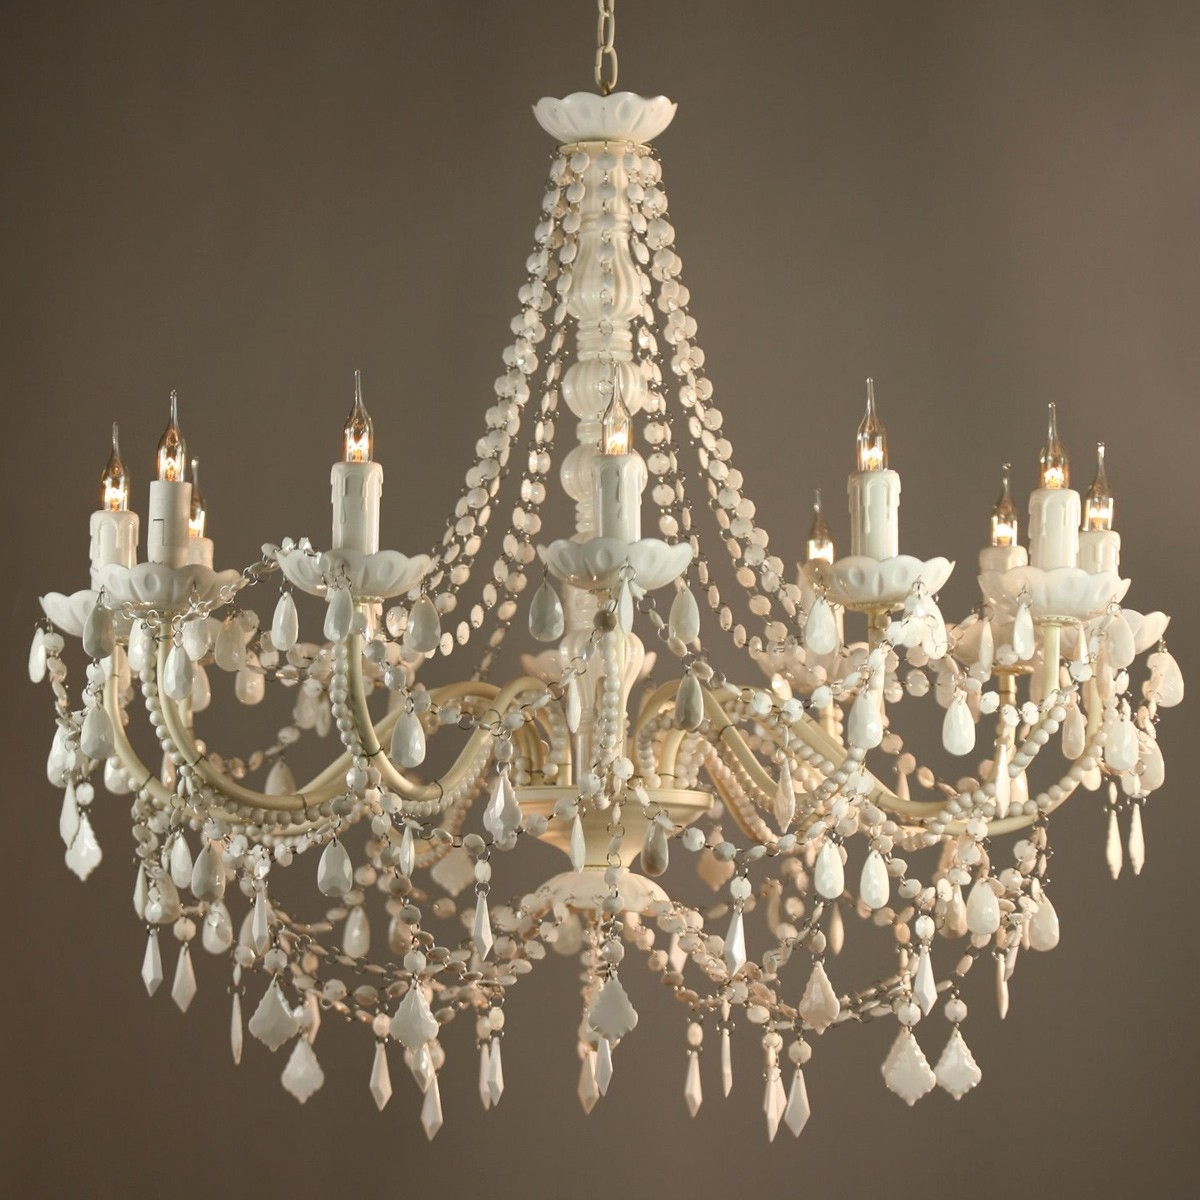 Great Vintage Chandeliers 27 In Home Design Styles Interior Ideas Throughout Antique Style Chandeliers (#7 of 12)